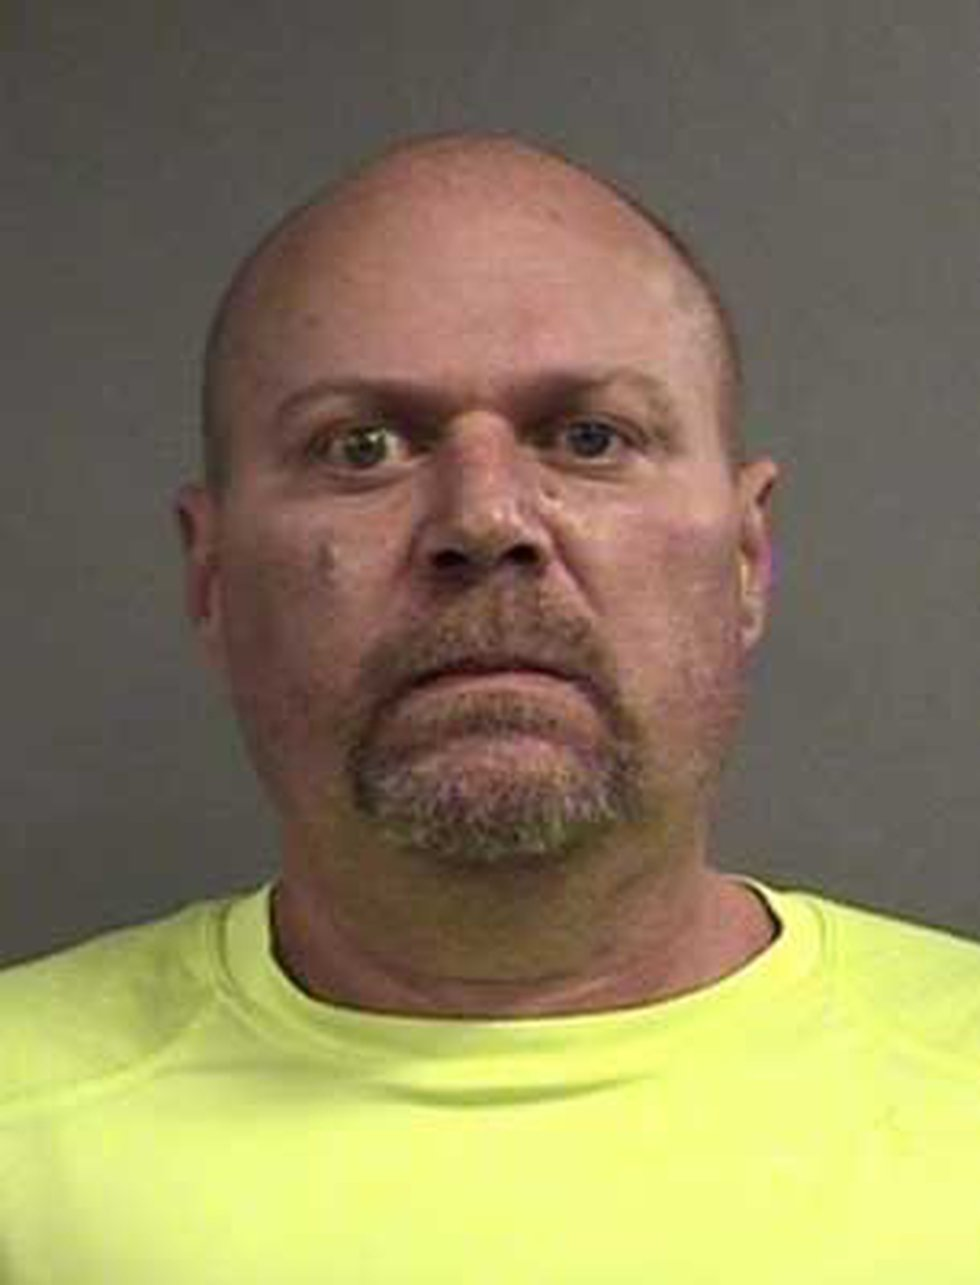 Police say Gregory Alan Bush opened fire at a Louisville Kroger, killing two people.